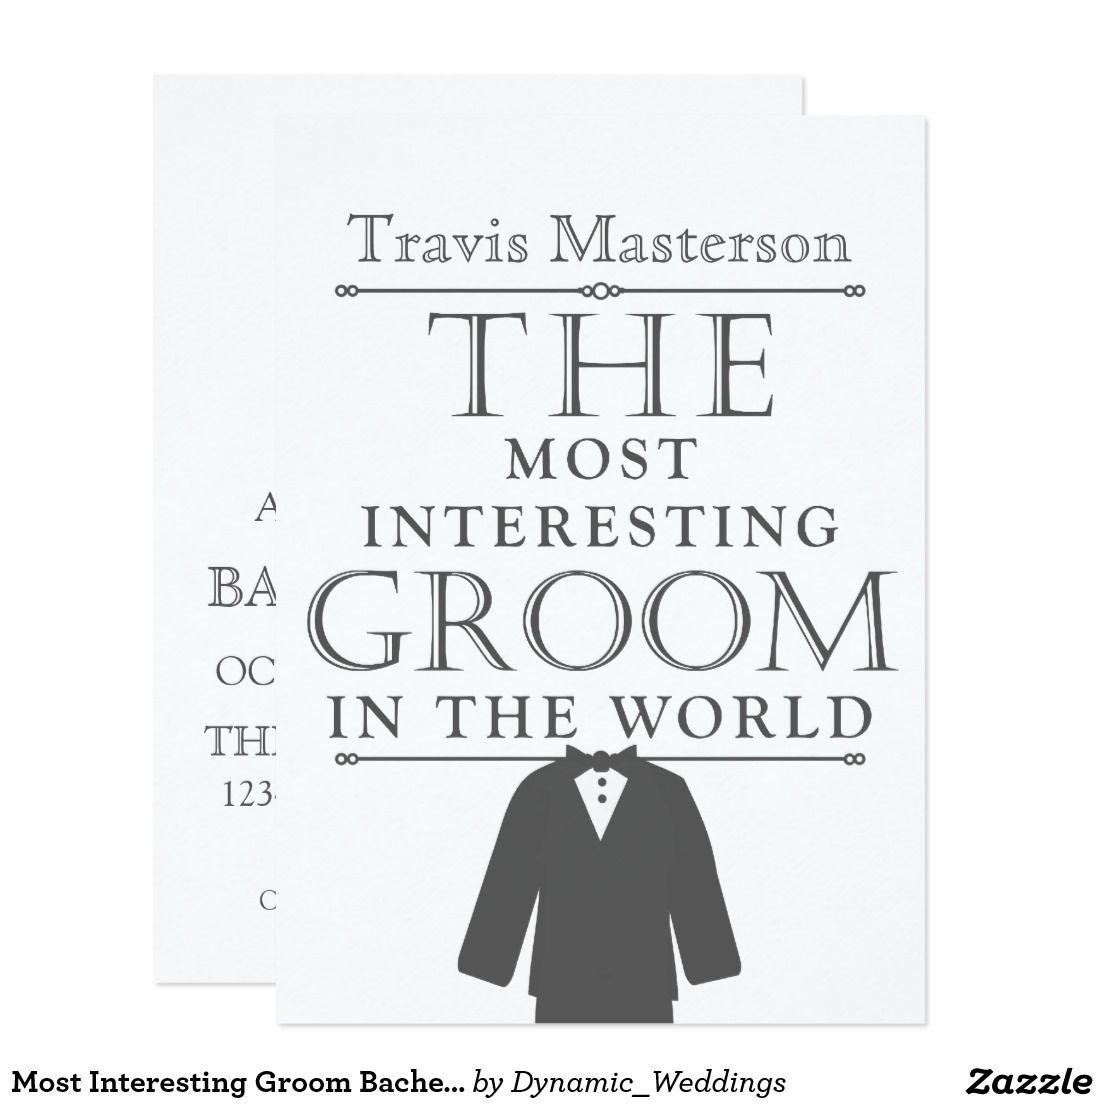 Most Interesting Groom Bachelor Party Invite | Bachelor parties ...